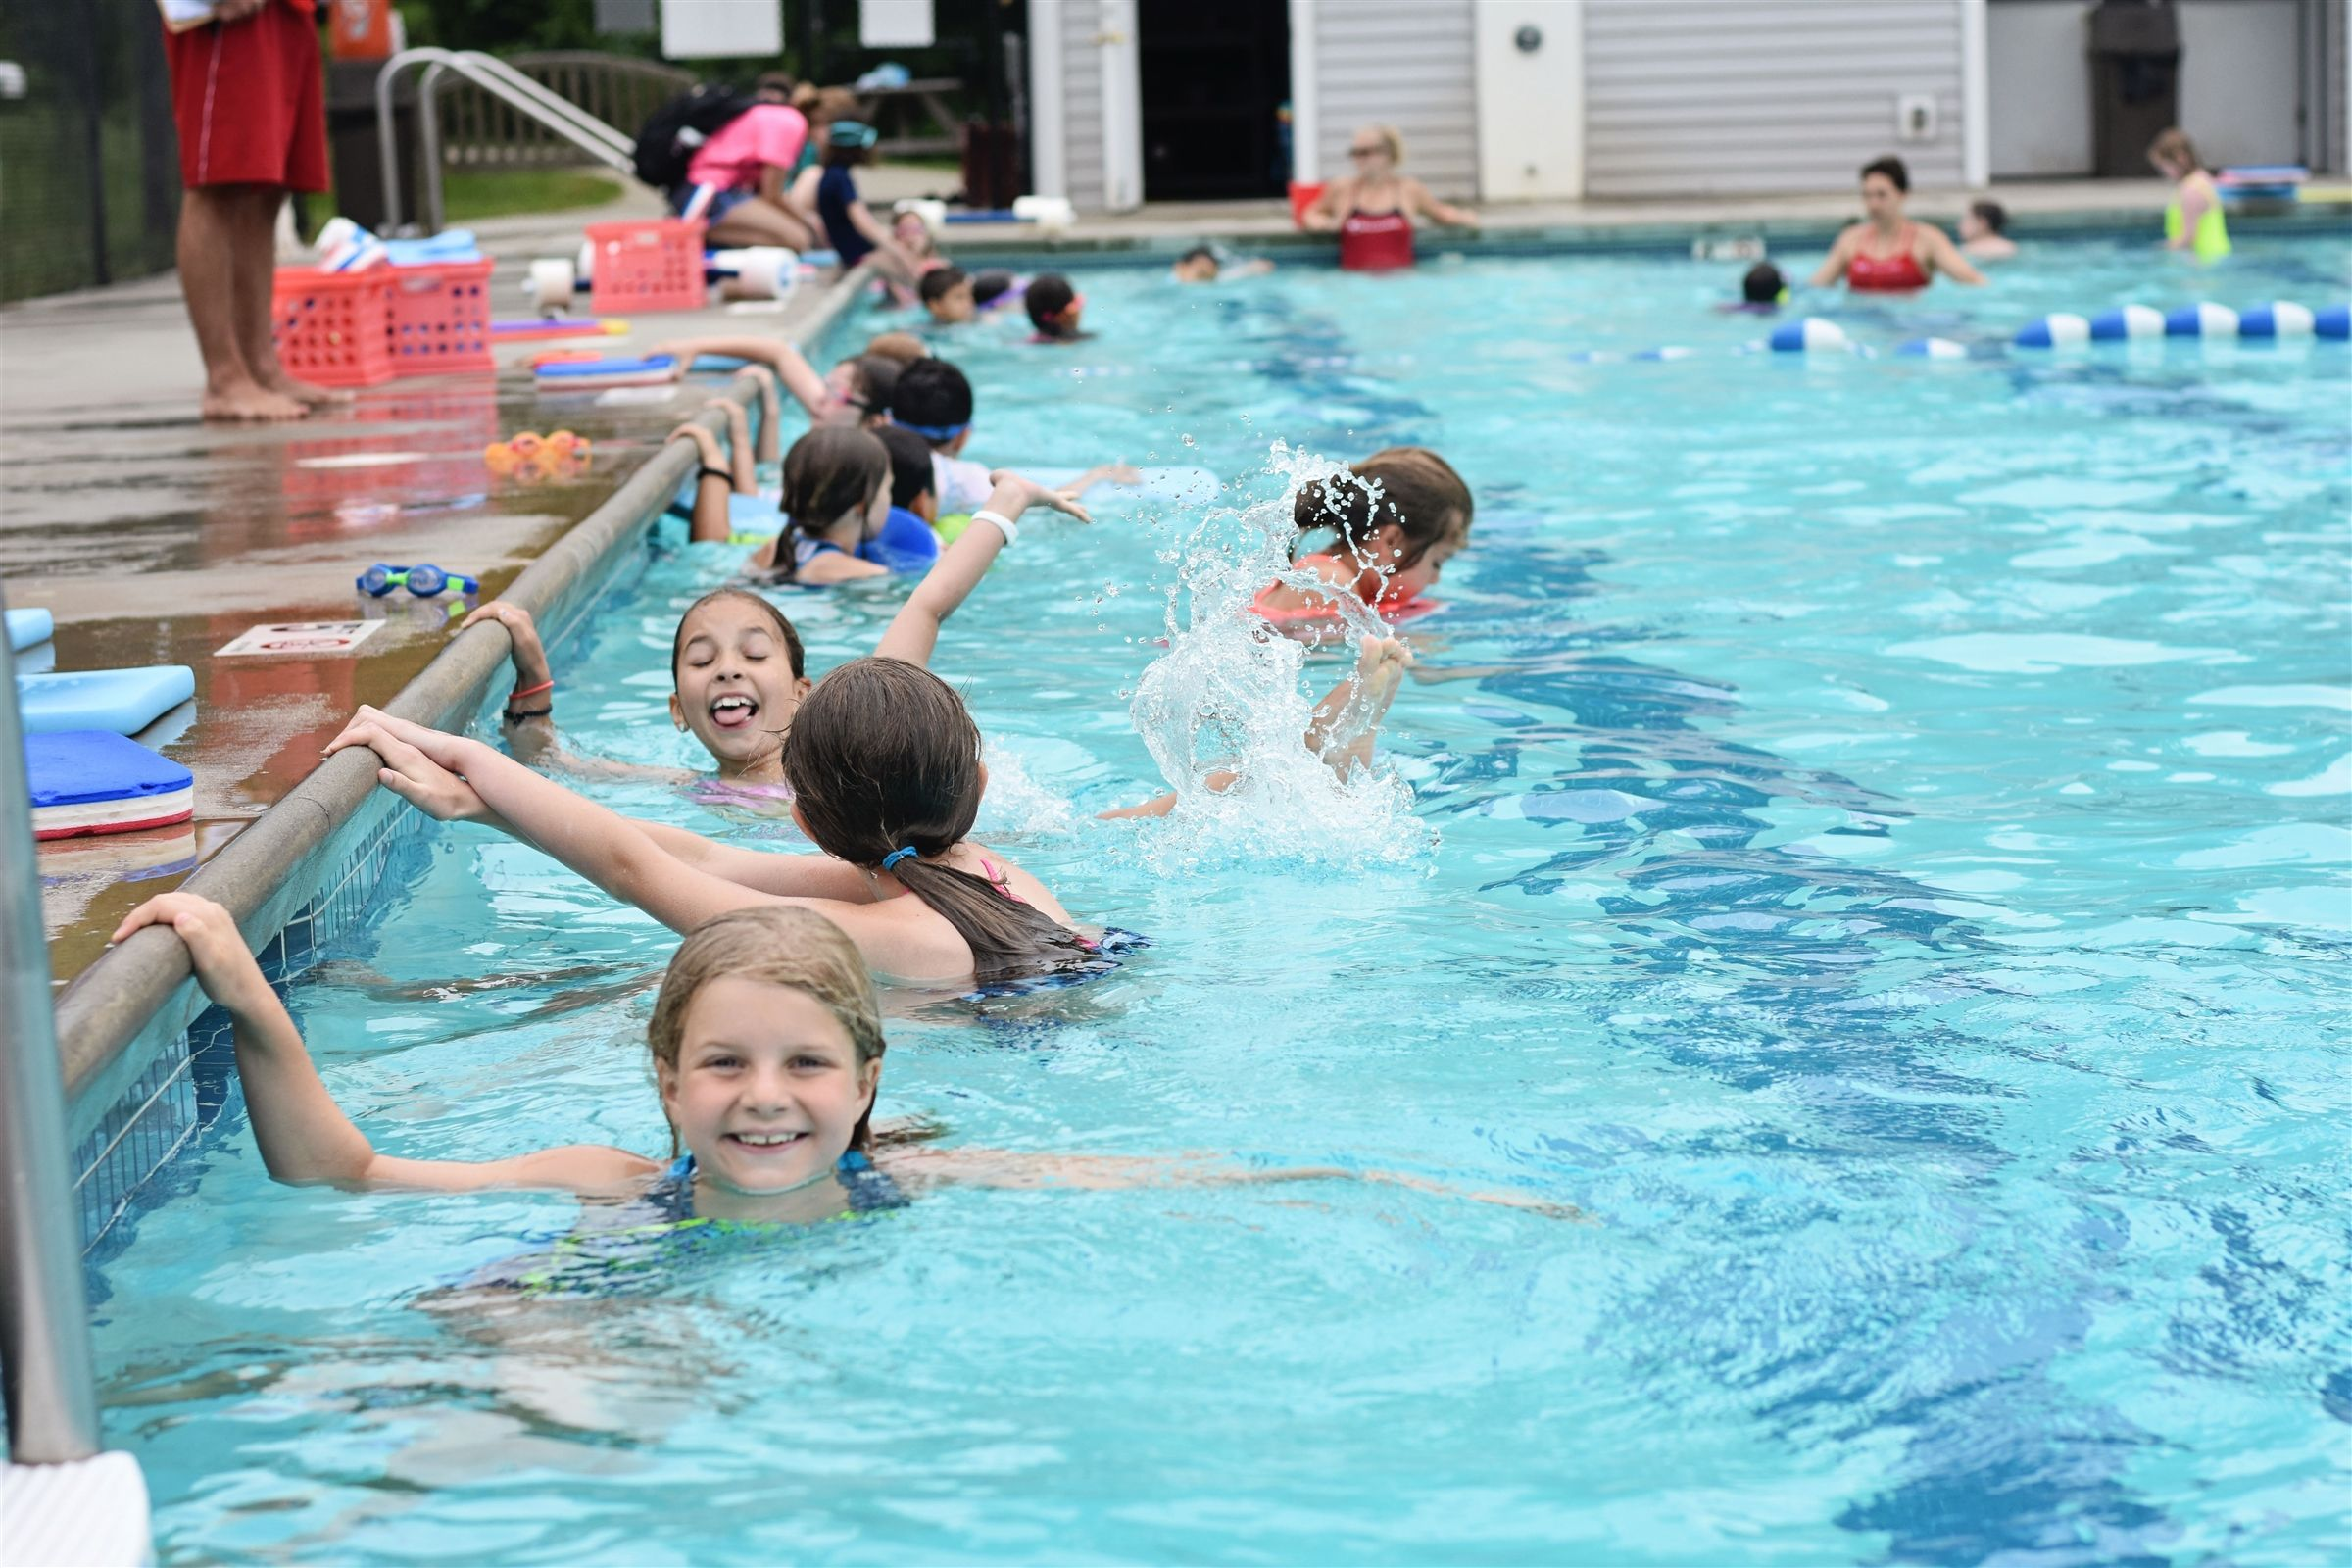 FaySummer campers have access to two outdoor, heated swimming pools. One pool is an adult-size, 25 meter pool...